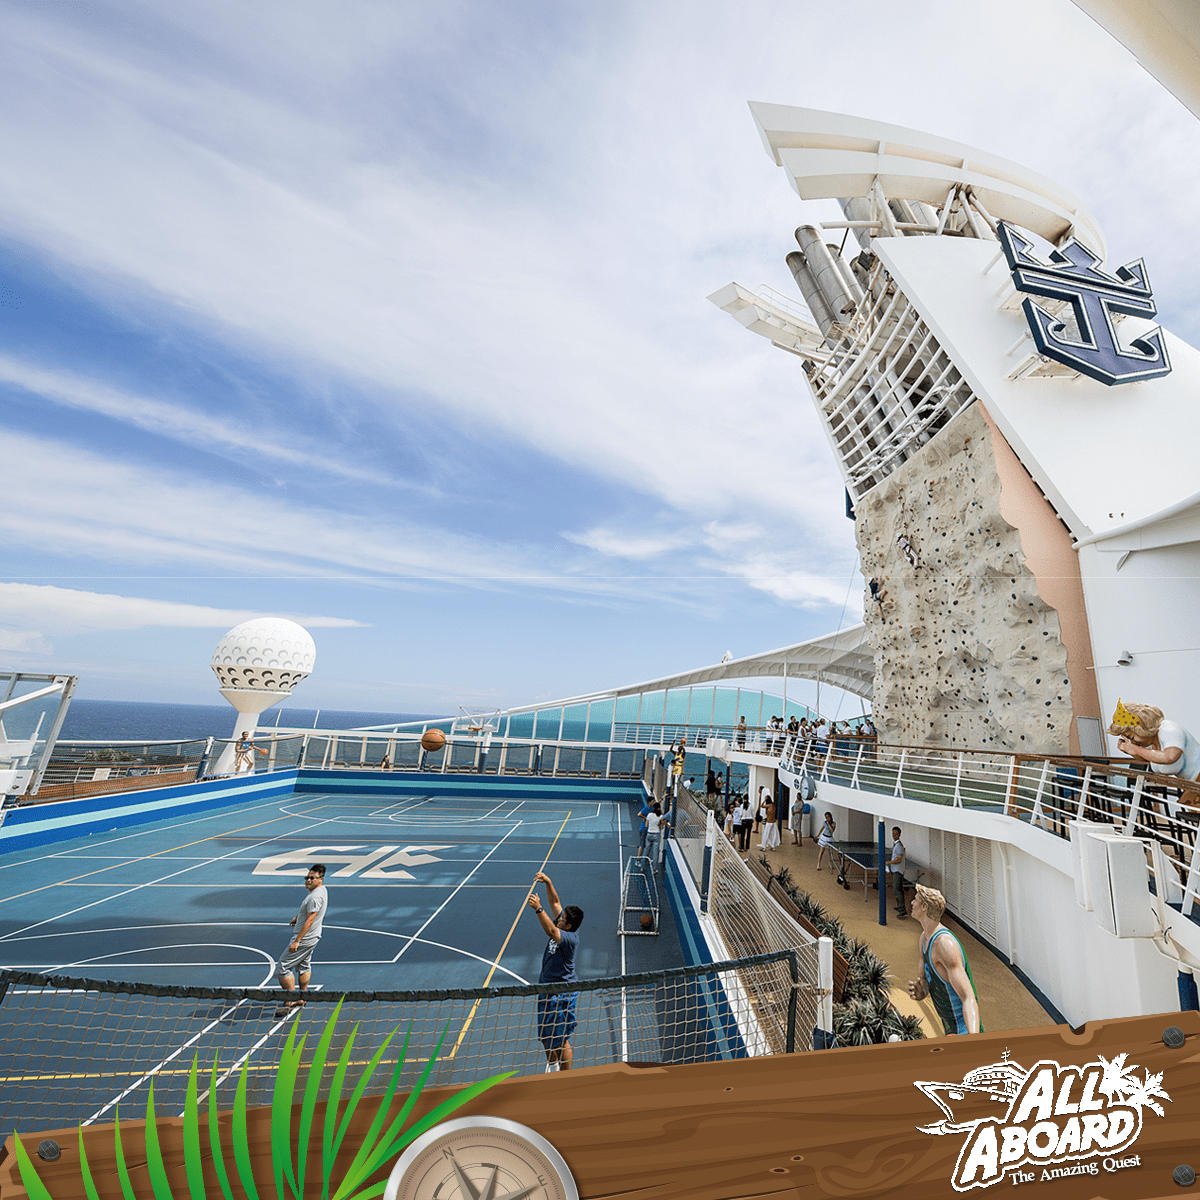 Fun deck activities on the Mariner of the Seas like rock-climbing and basketball!